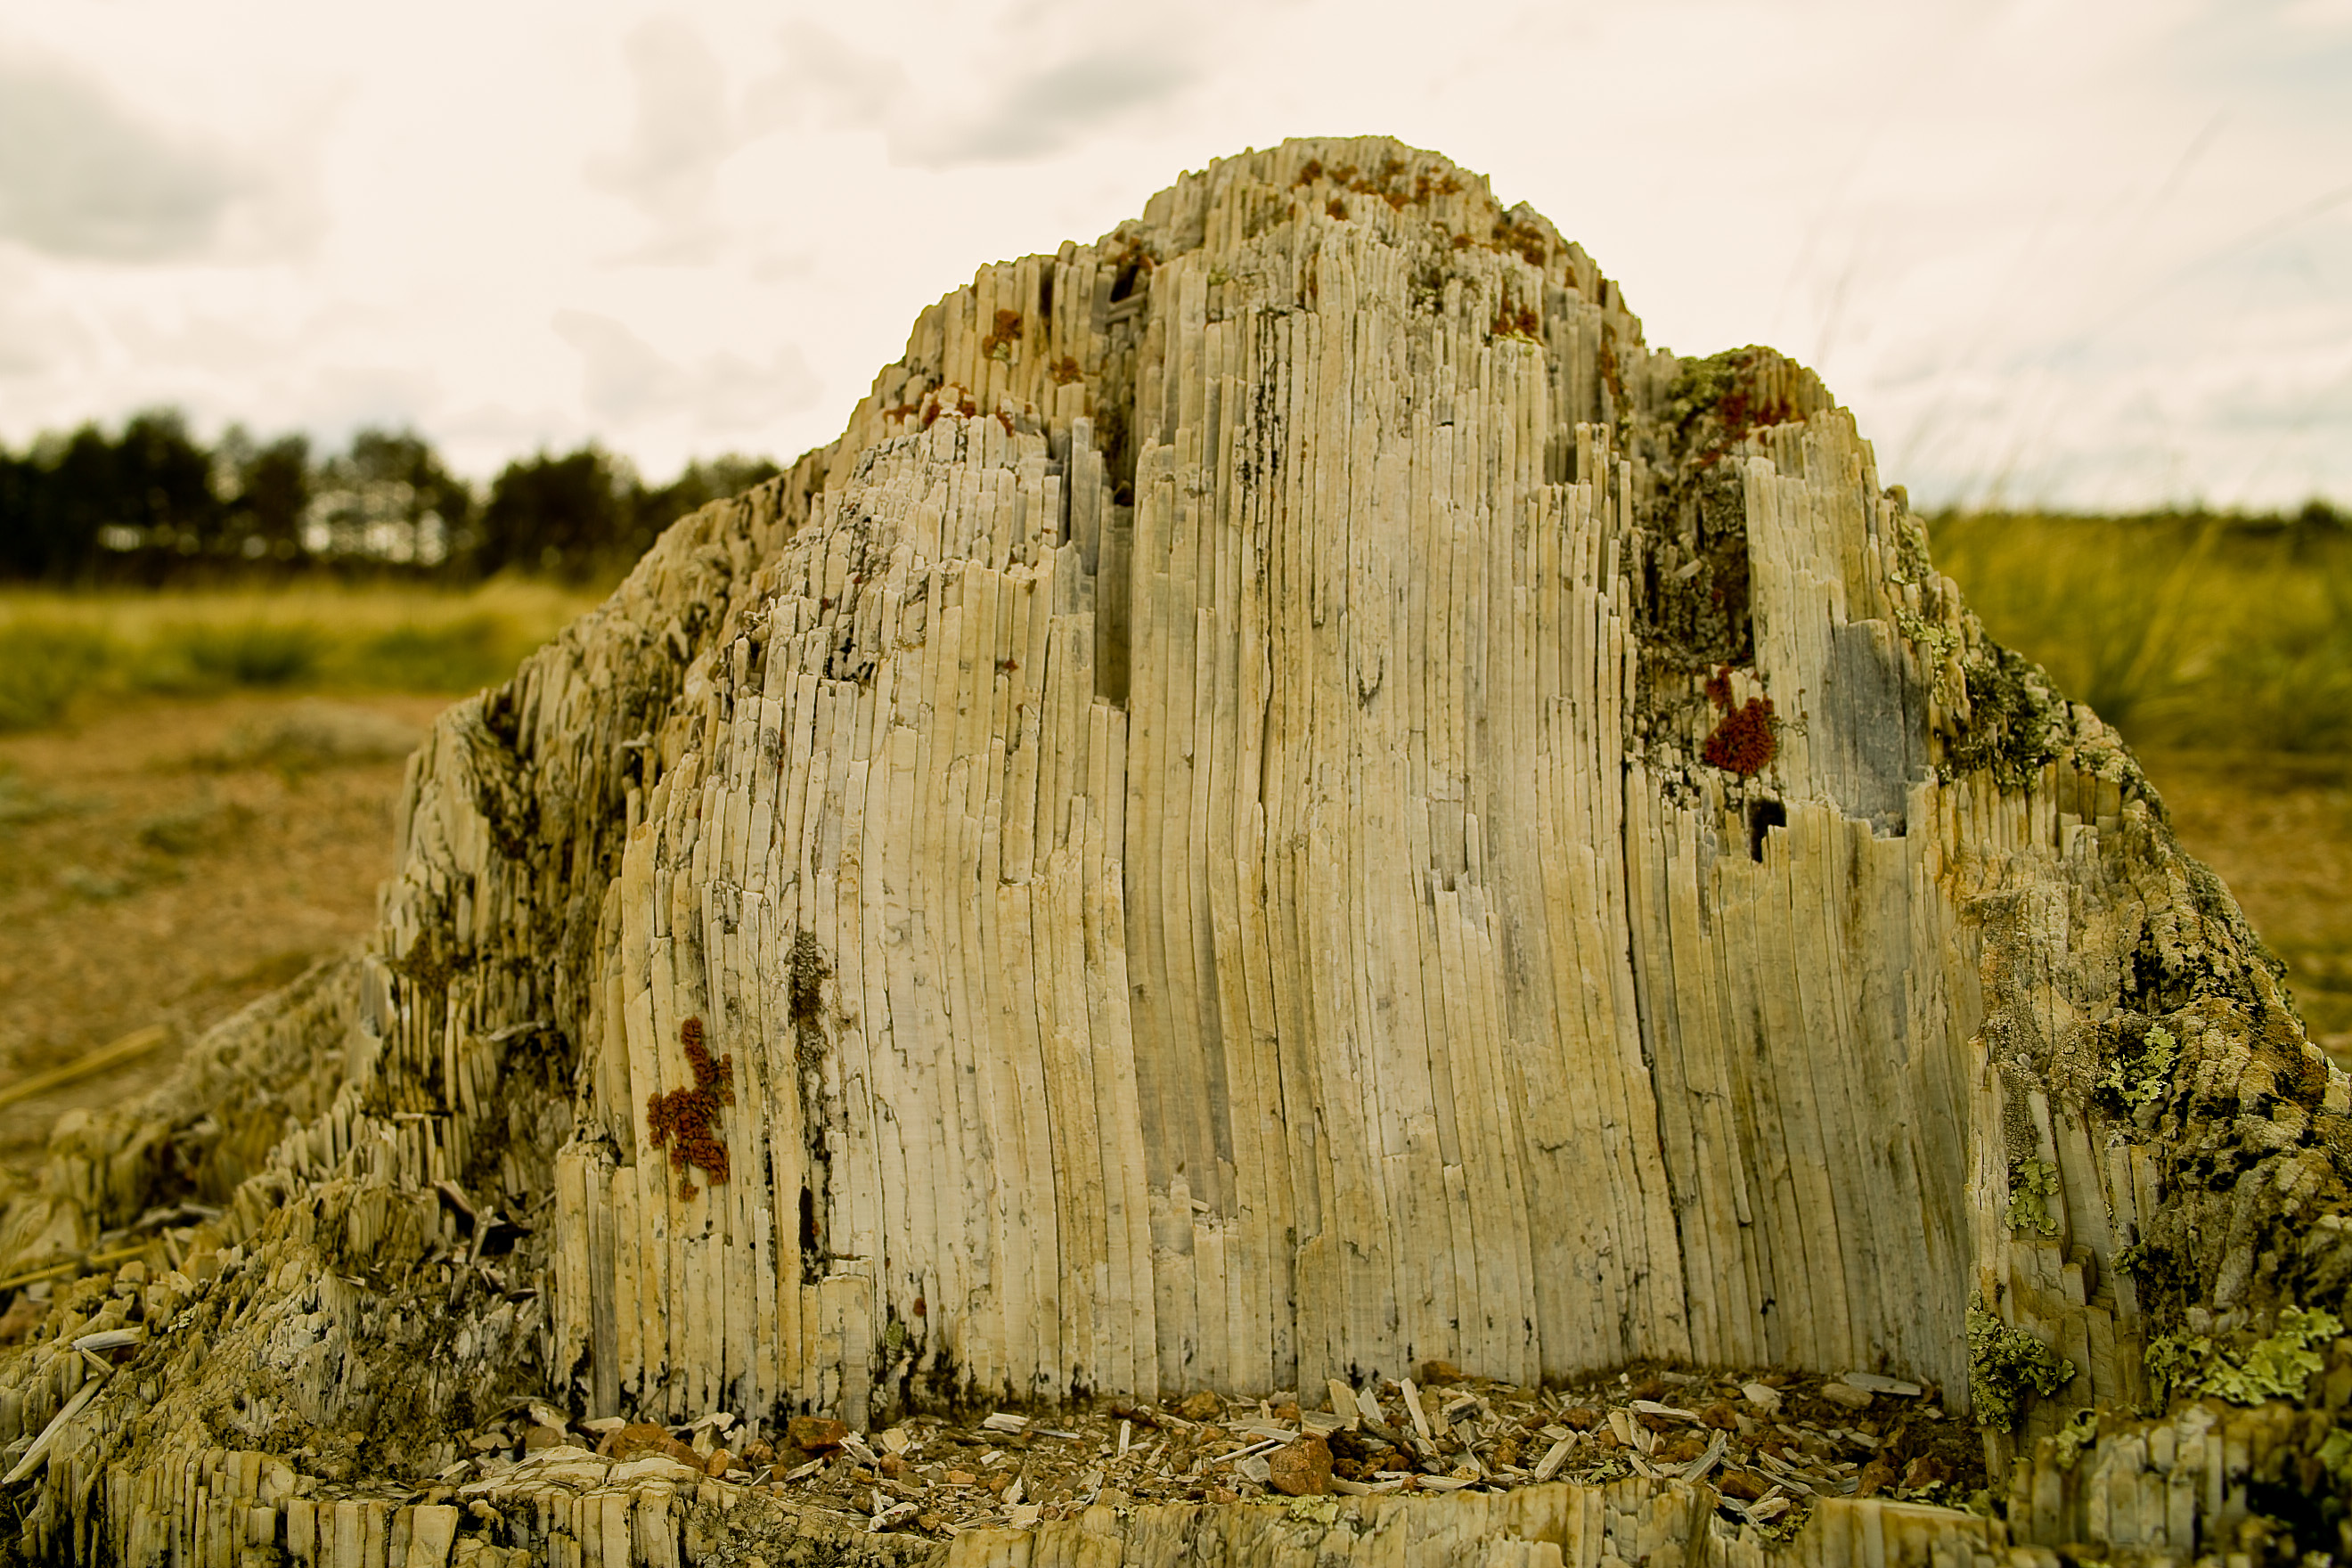 Giant petrified wood stump at Florissant